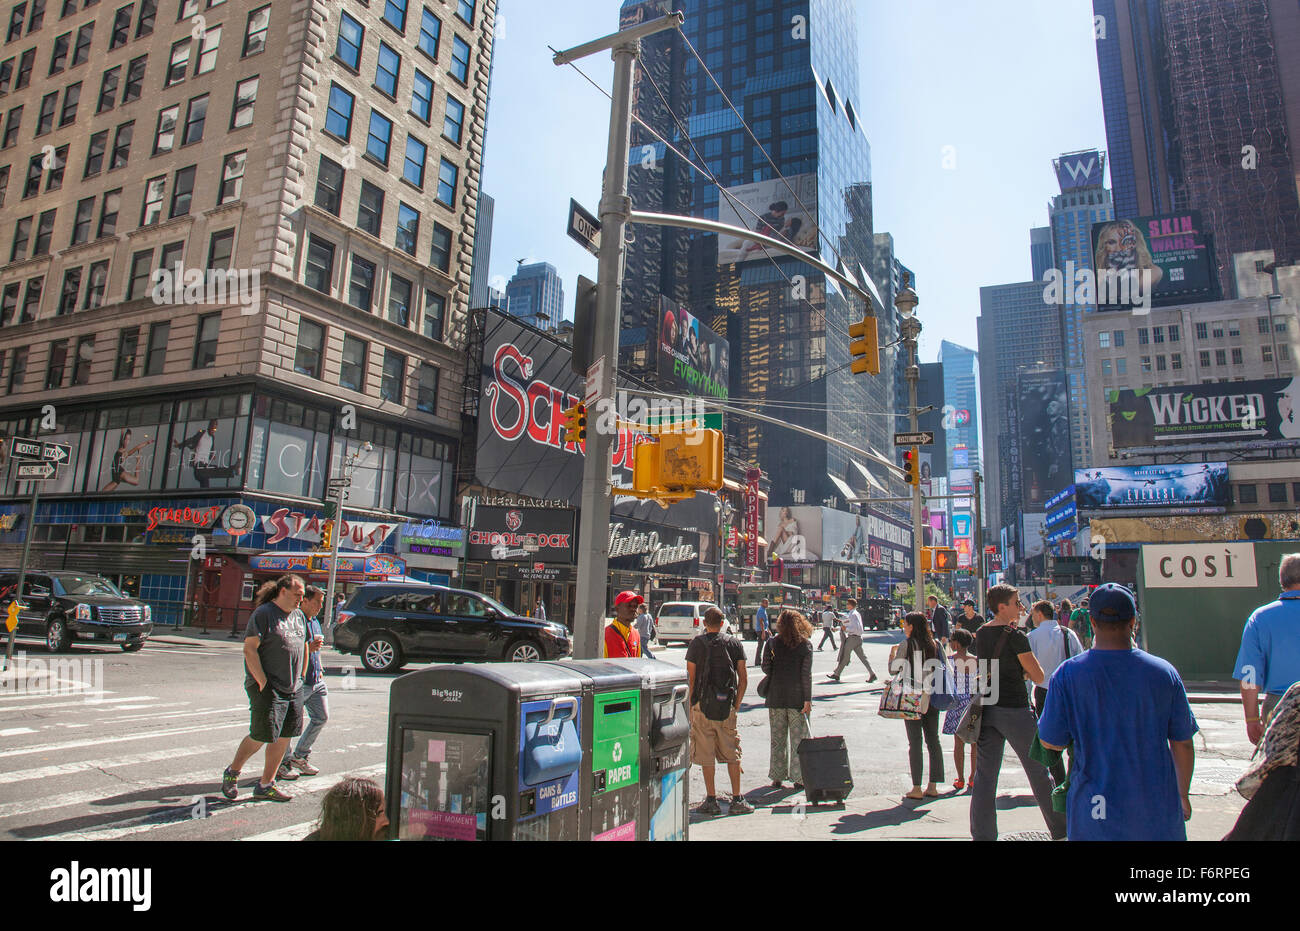 Manhattan New York City Times Square billboards and advertising signs in busy city center - Stock Image